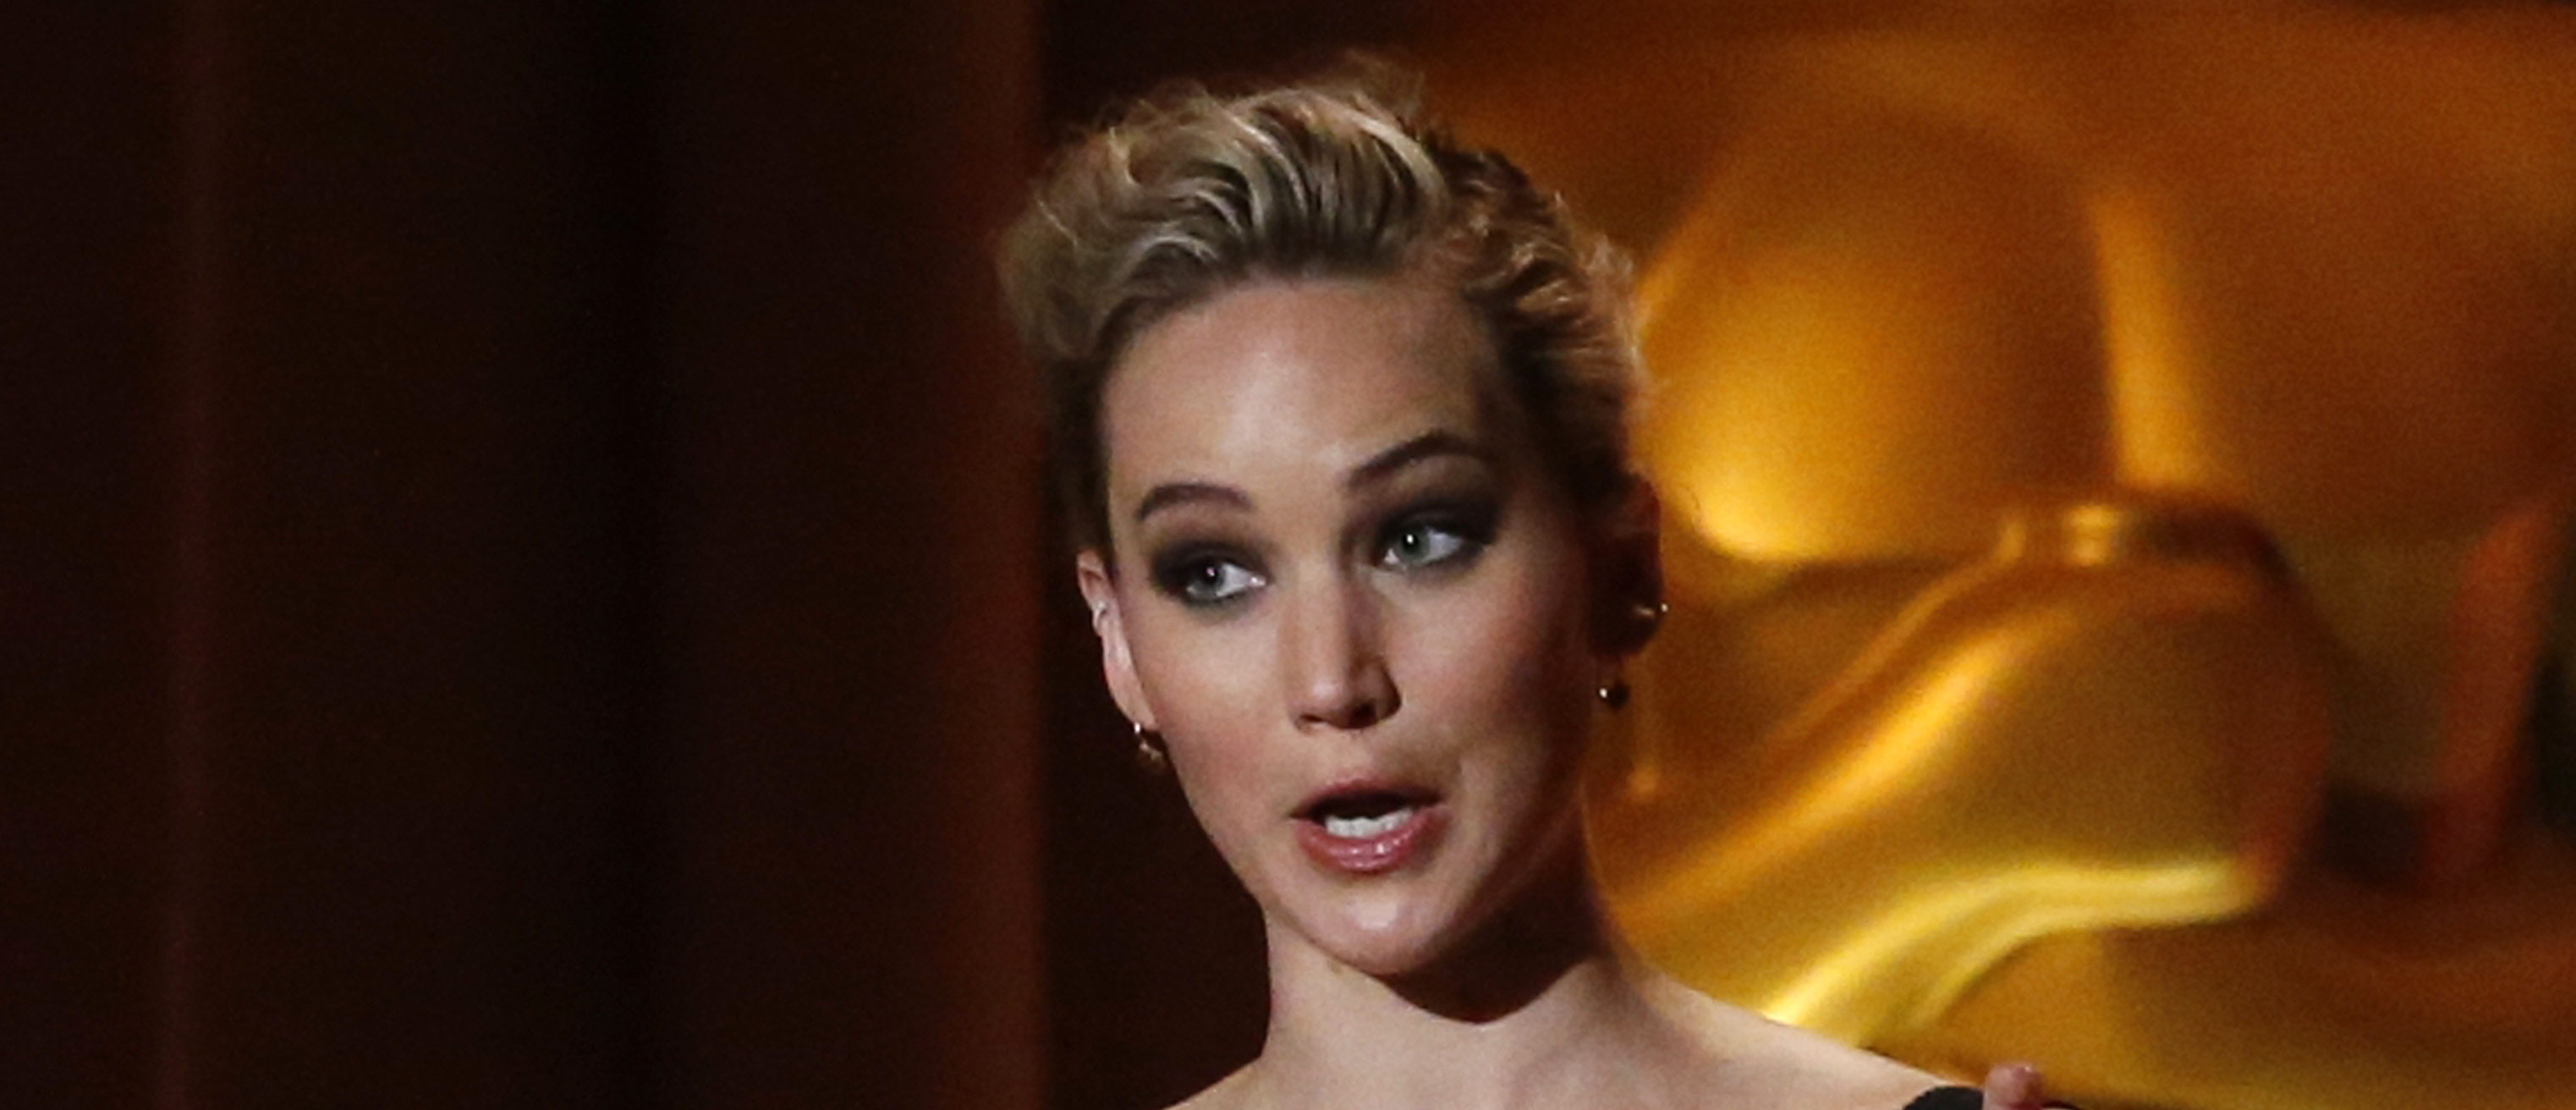 9TH Governors Awards – Show – Los Angeles, California, U.S., 11/11/2017 - Actress Jennifer Lawrence speaks on stage. REUTERS/Mario Anzuoni - HP1EDBC0JVCGZ